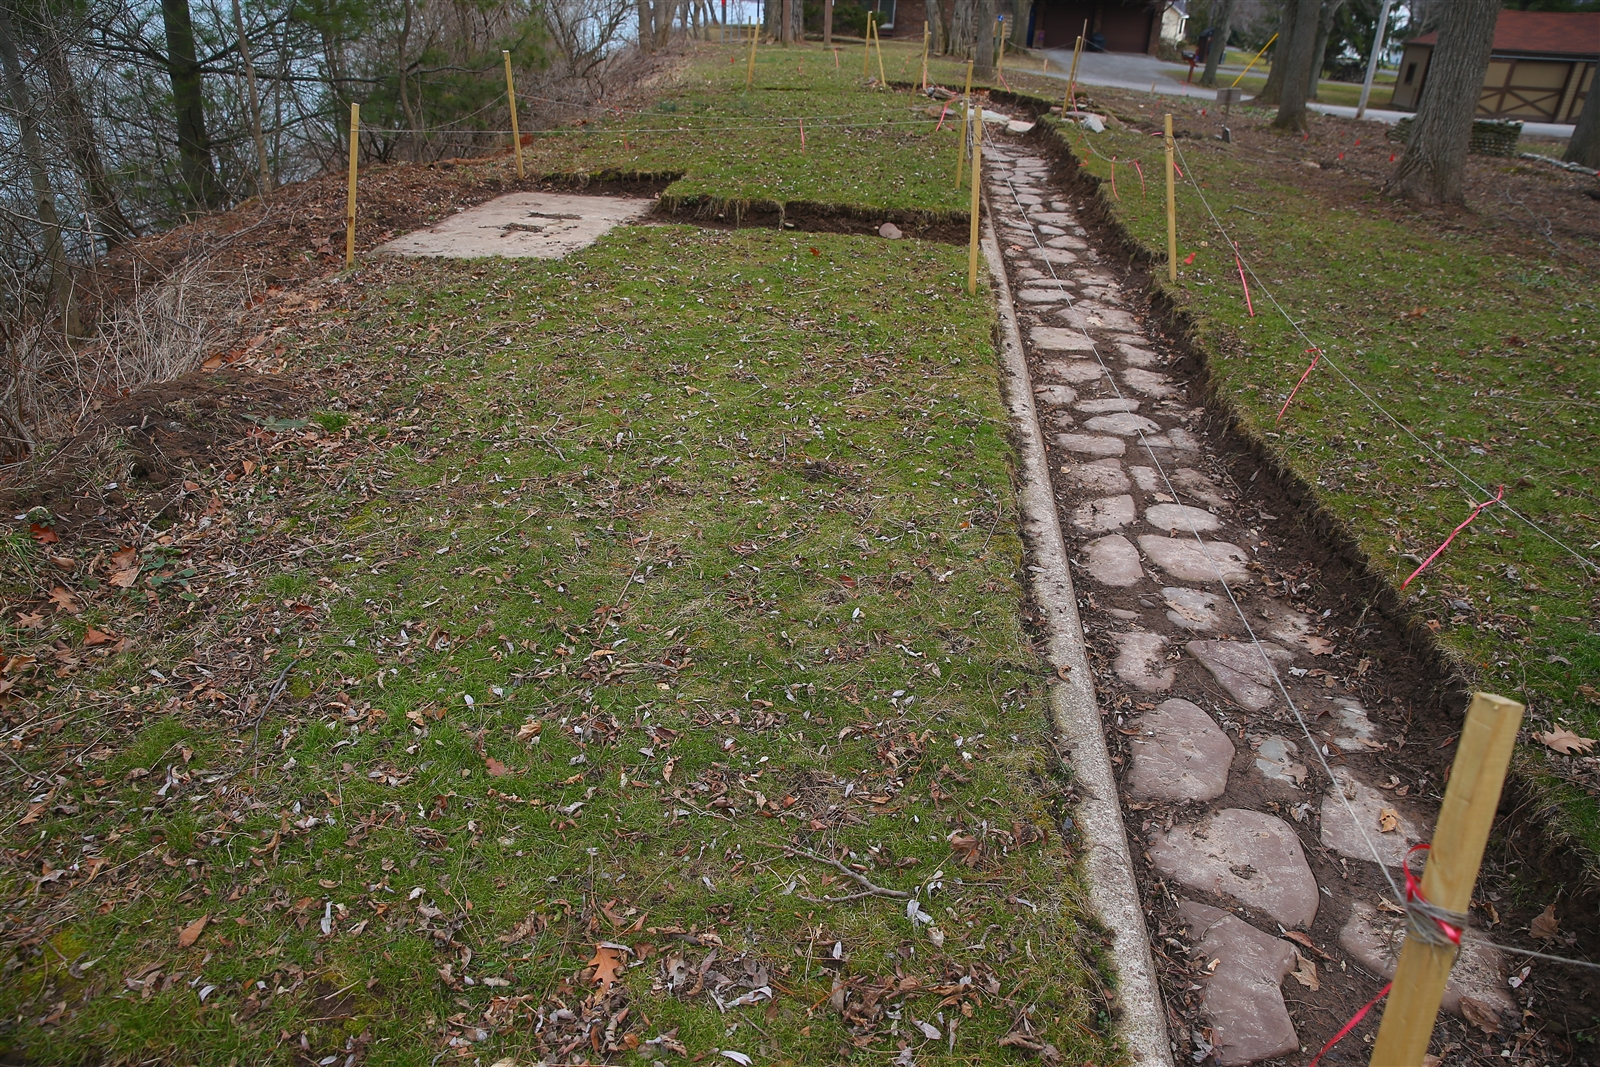 The excavated stone pathway has a small offshoot path that leads to what might have been a spot to place a small bench for a lake view. But without photos of the grounds, the Wertmans are guessing about what was where.